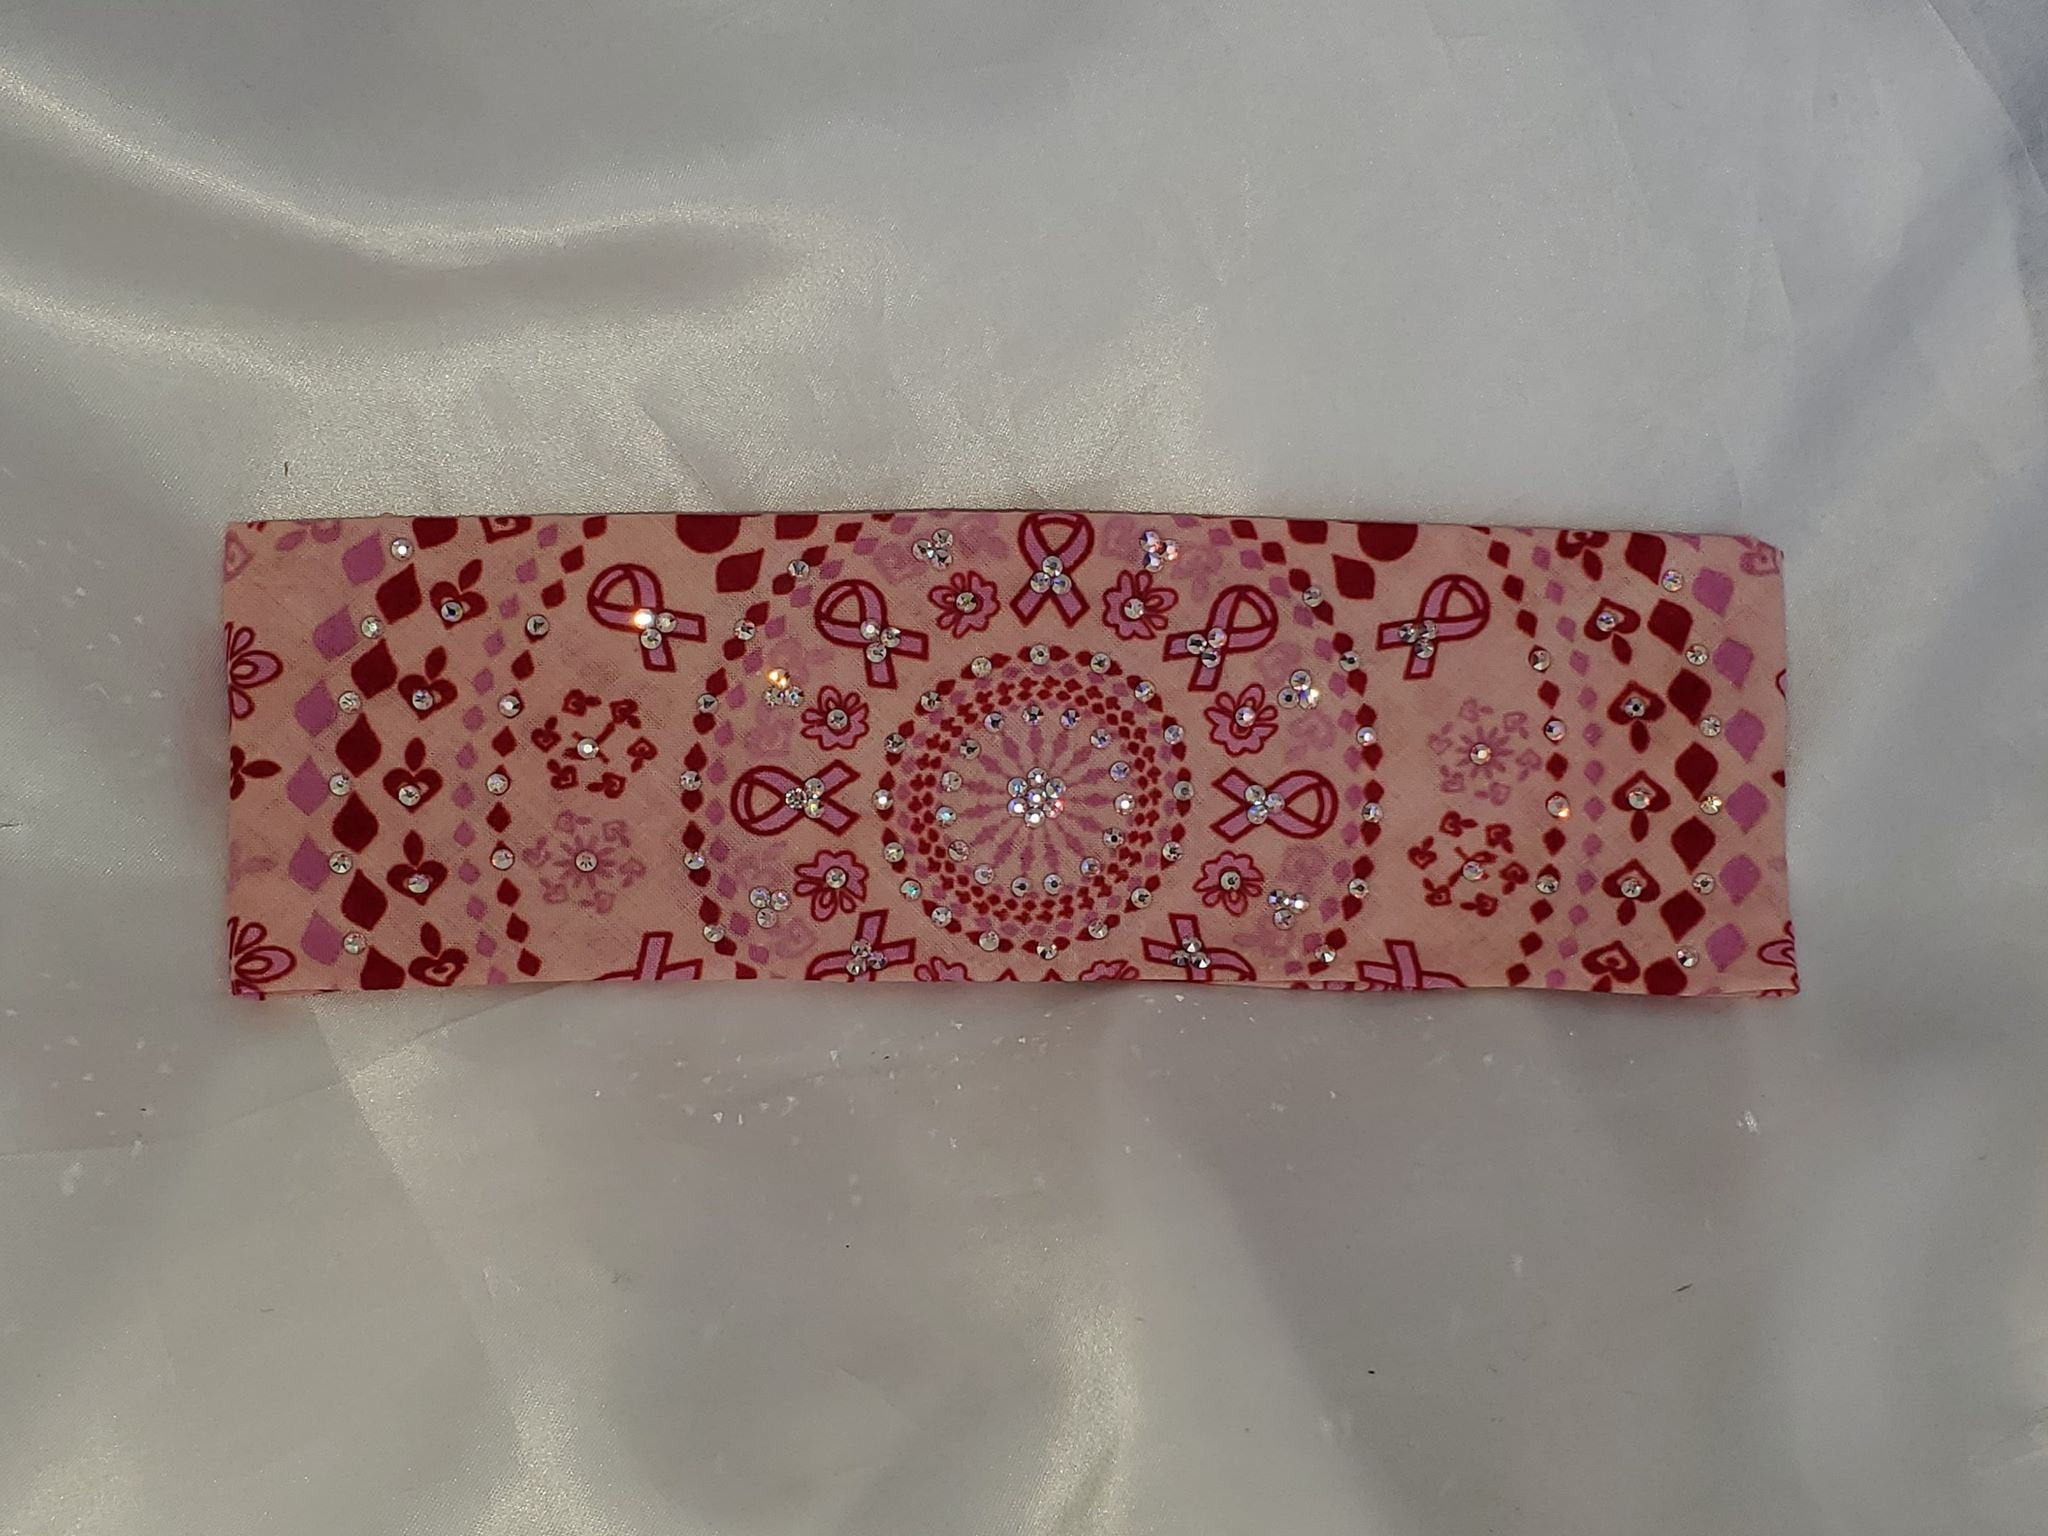 Pink breast cancer bandana With Aurora borealis Swarovski Crystals (Sku1420)